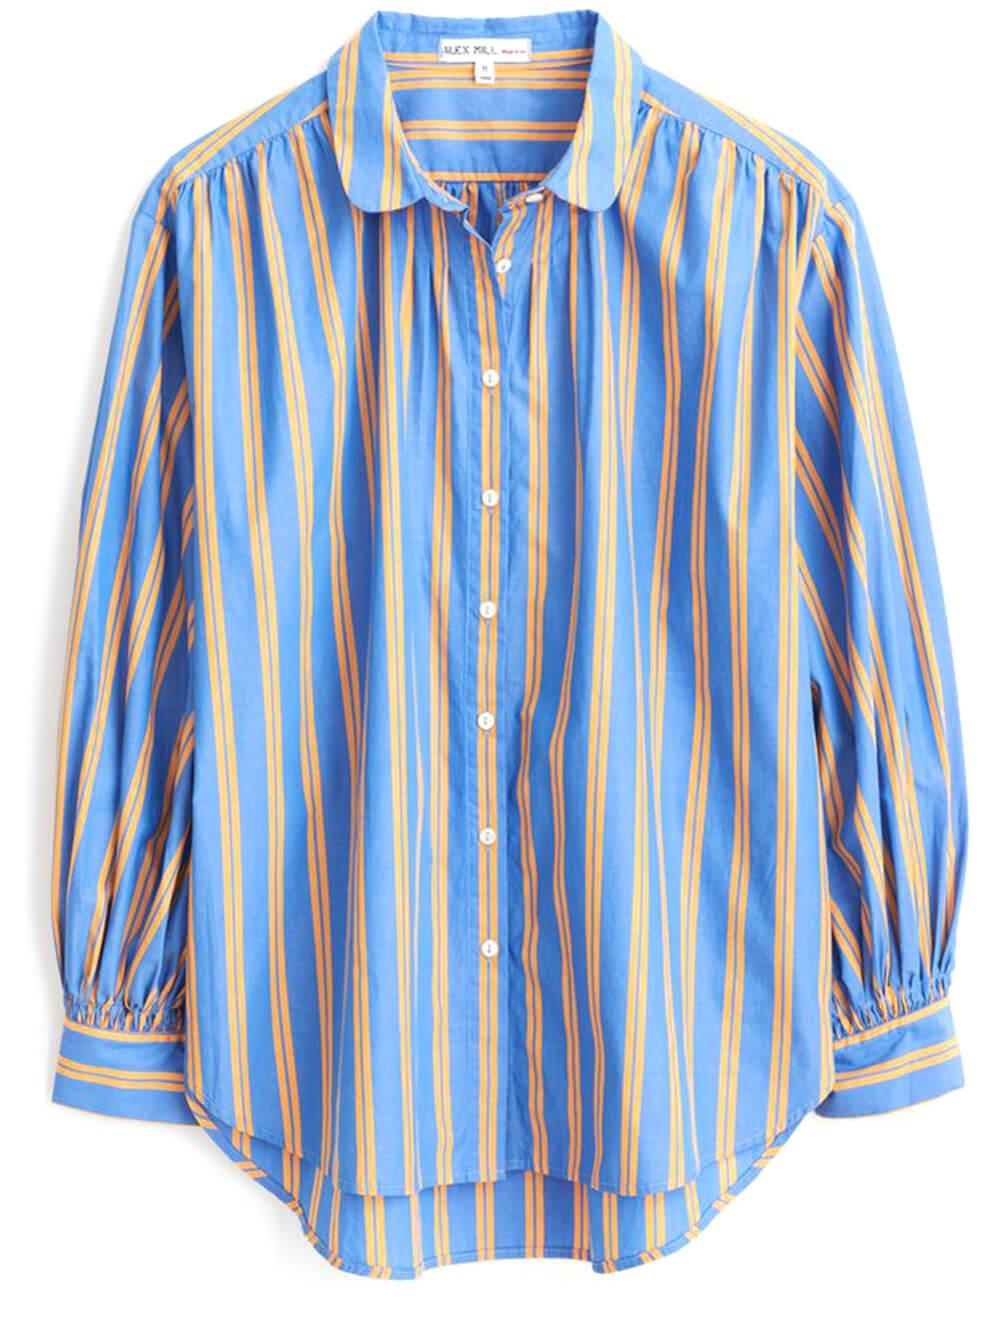 Kit Shirt in Stripe